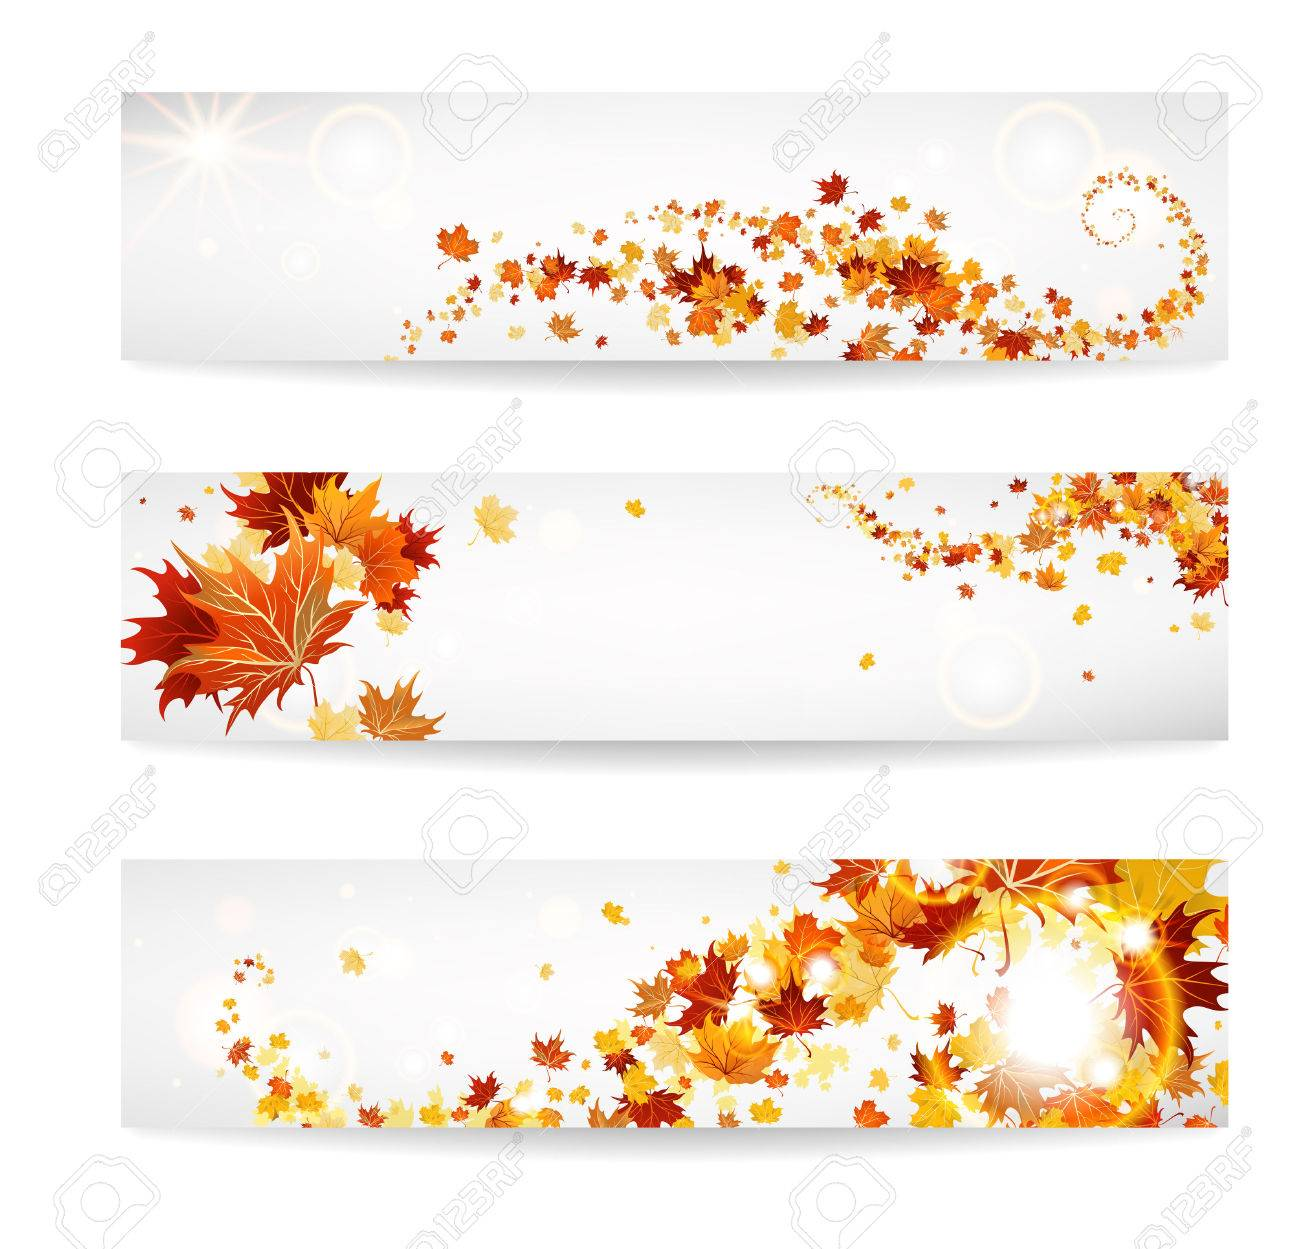 Set of banners with maple leaves. Copy space. - 32770400